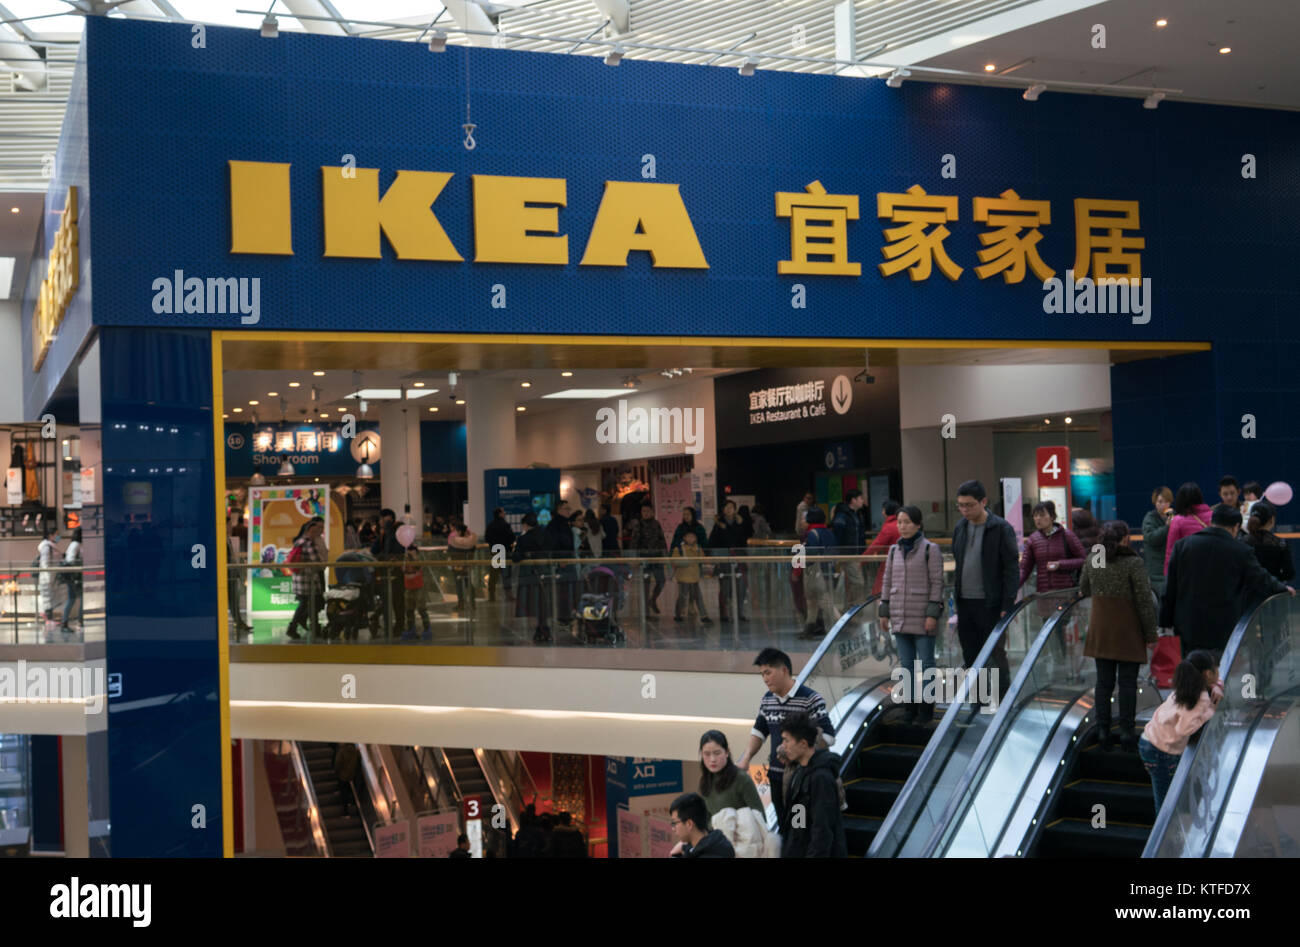 Outlet Brunnthal Ikea Store China Stock Photos And Ikea Store China Stock